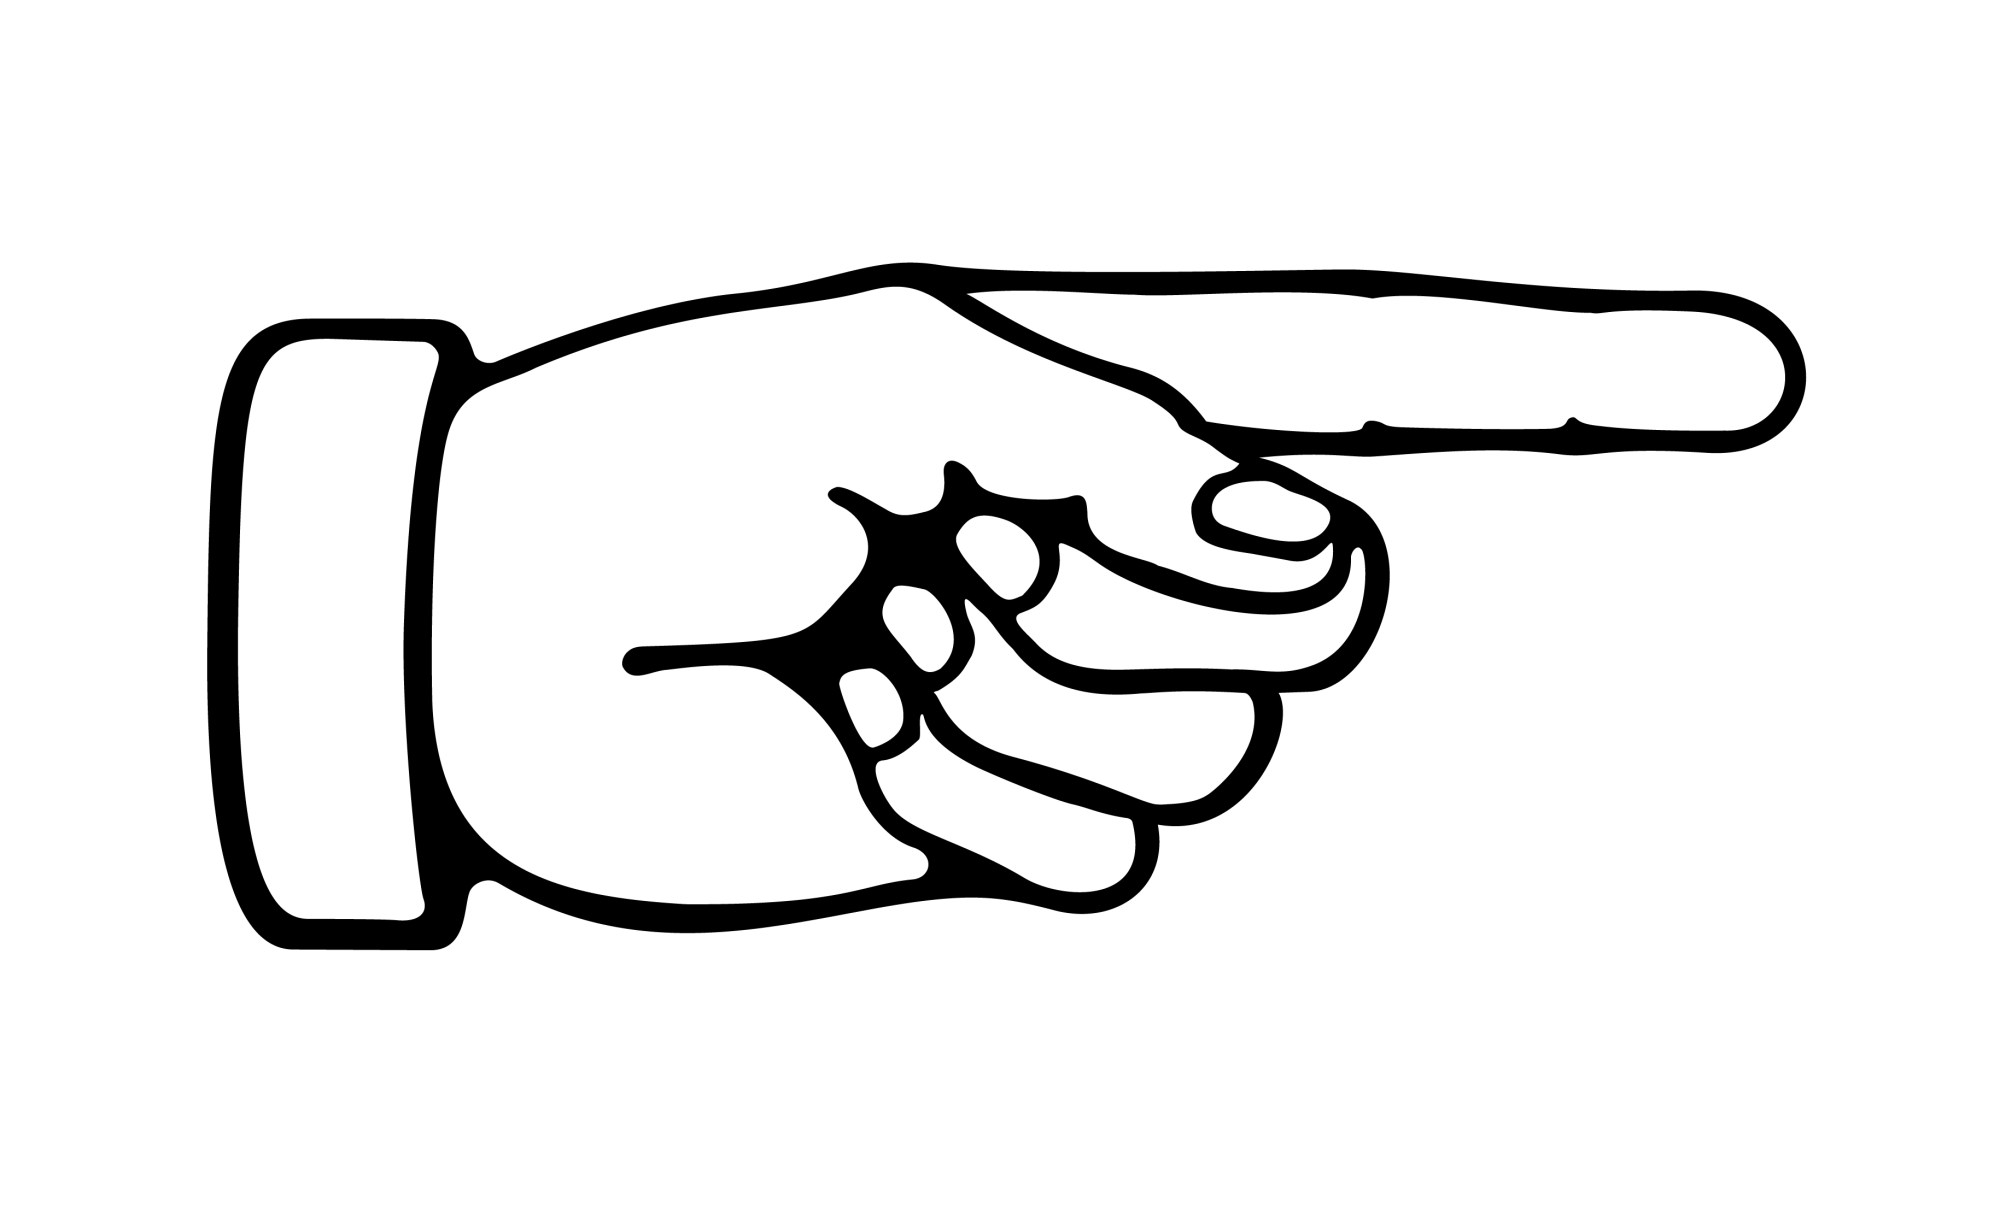 hight resolution of index finger clipart pointing